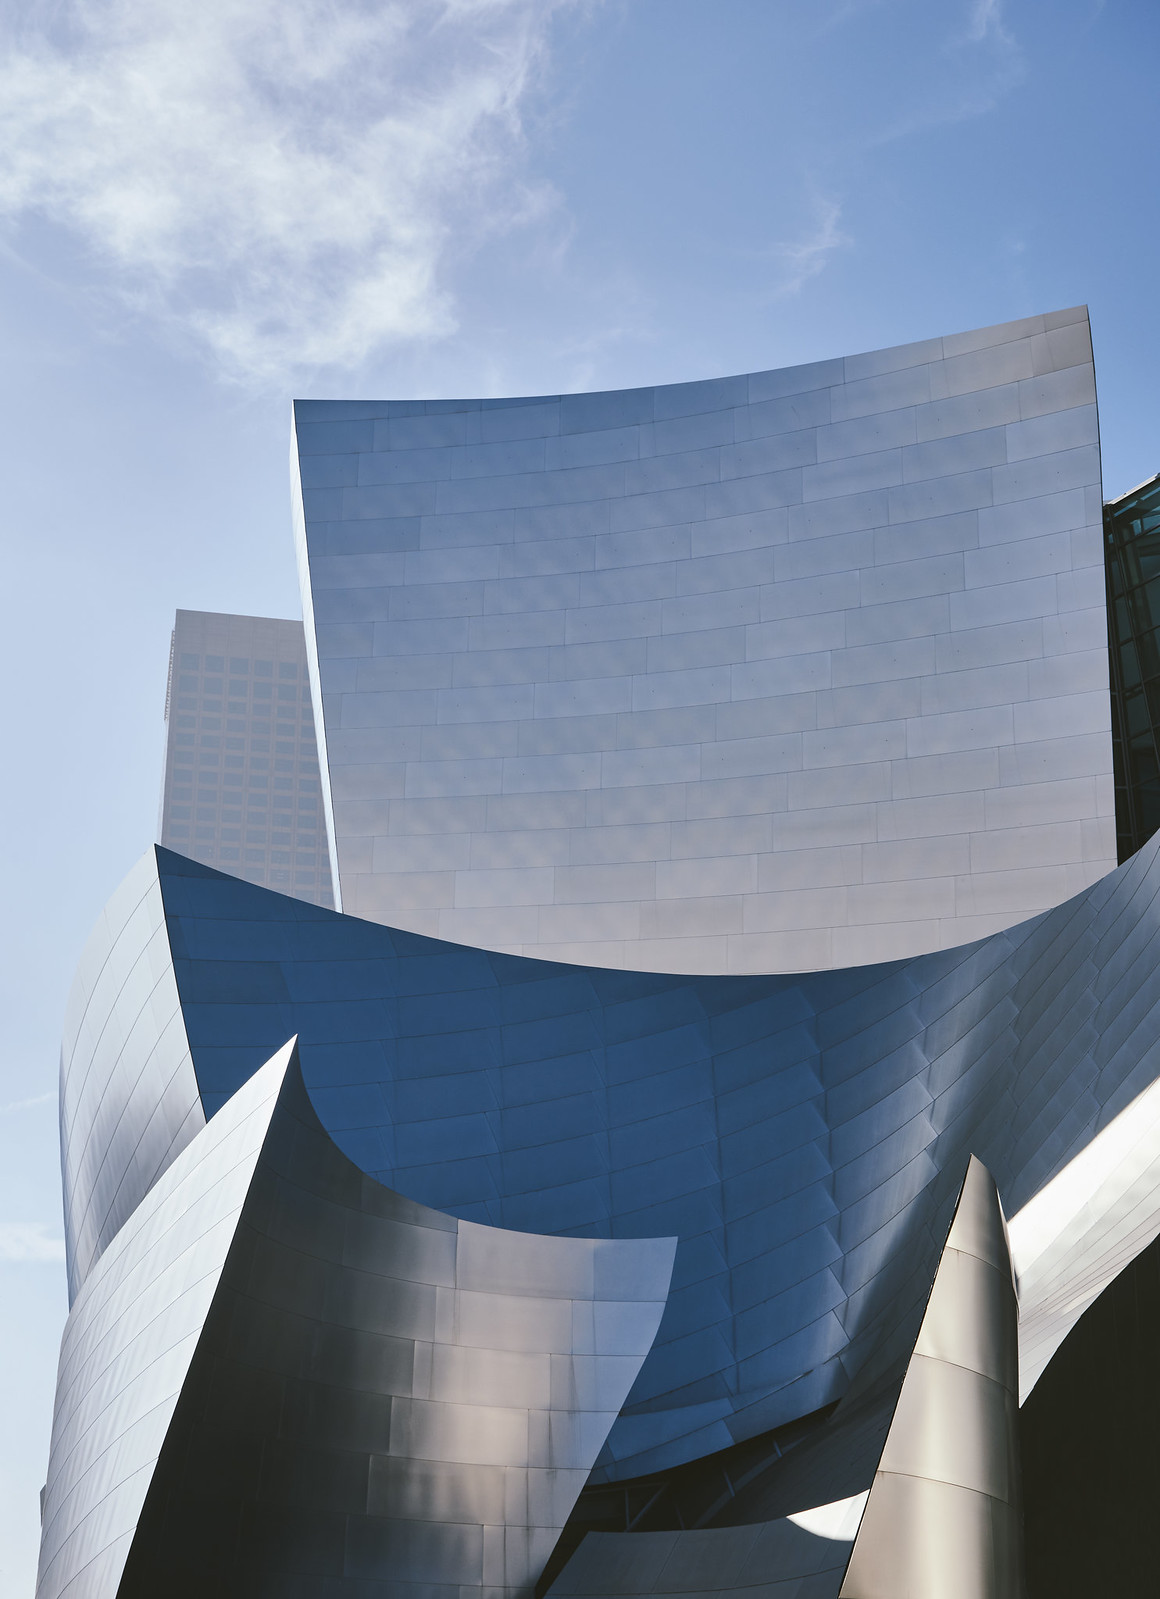 The Disney theater in Los Angeles Downtown.